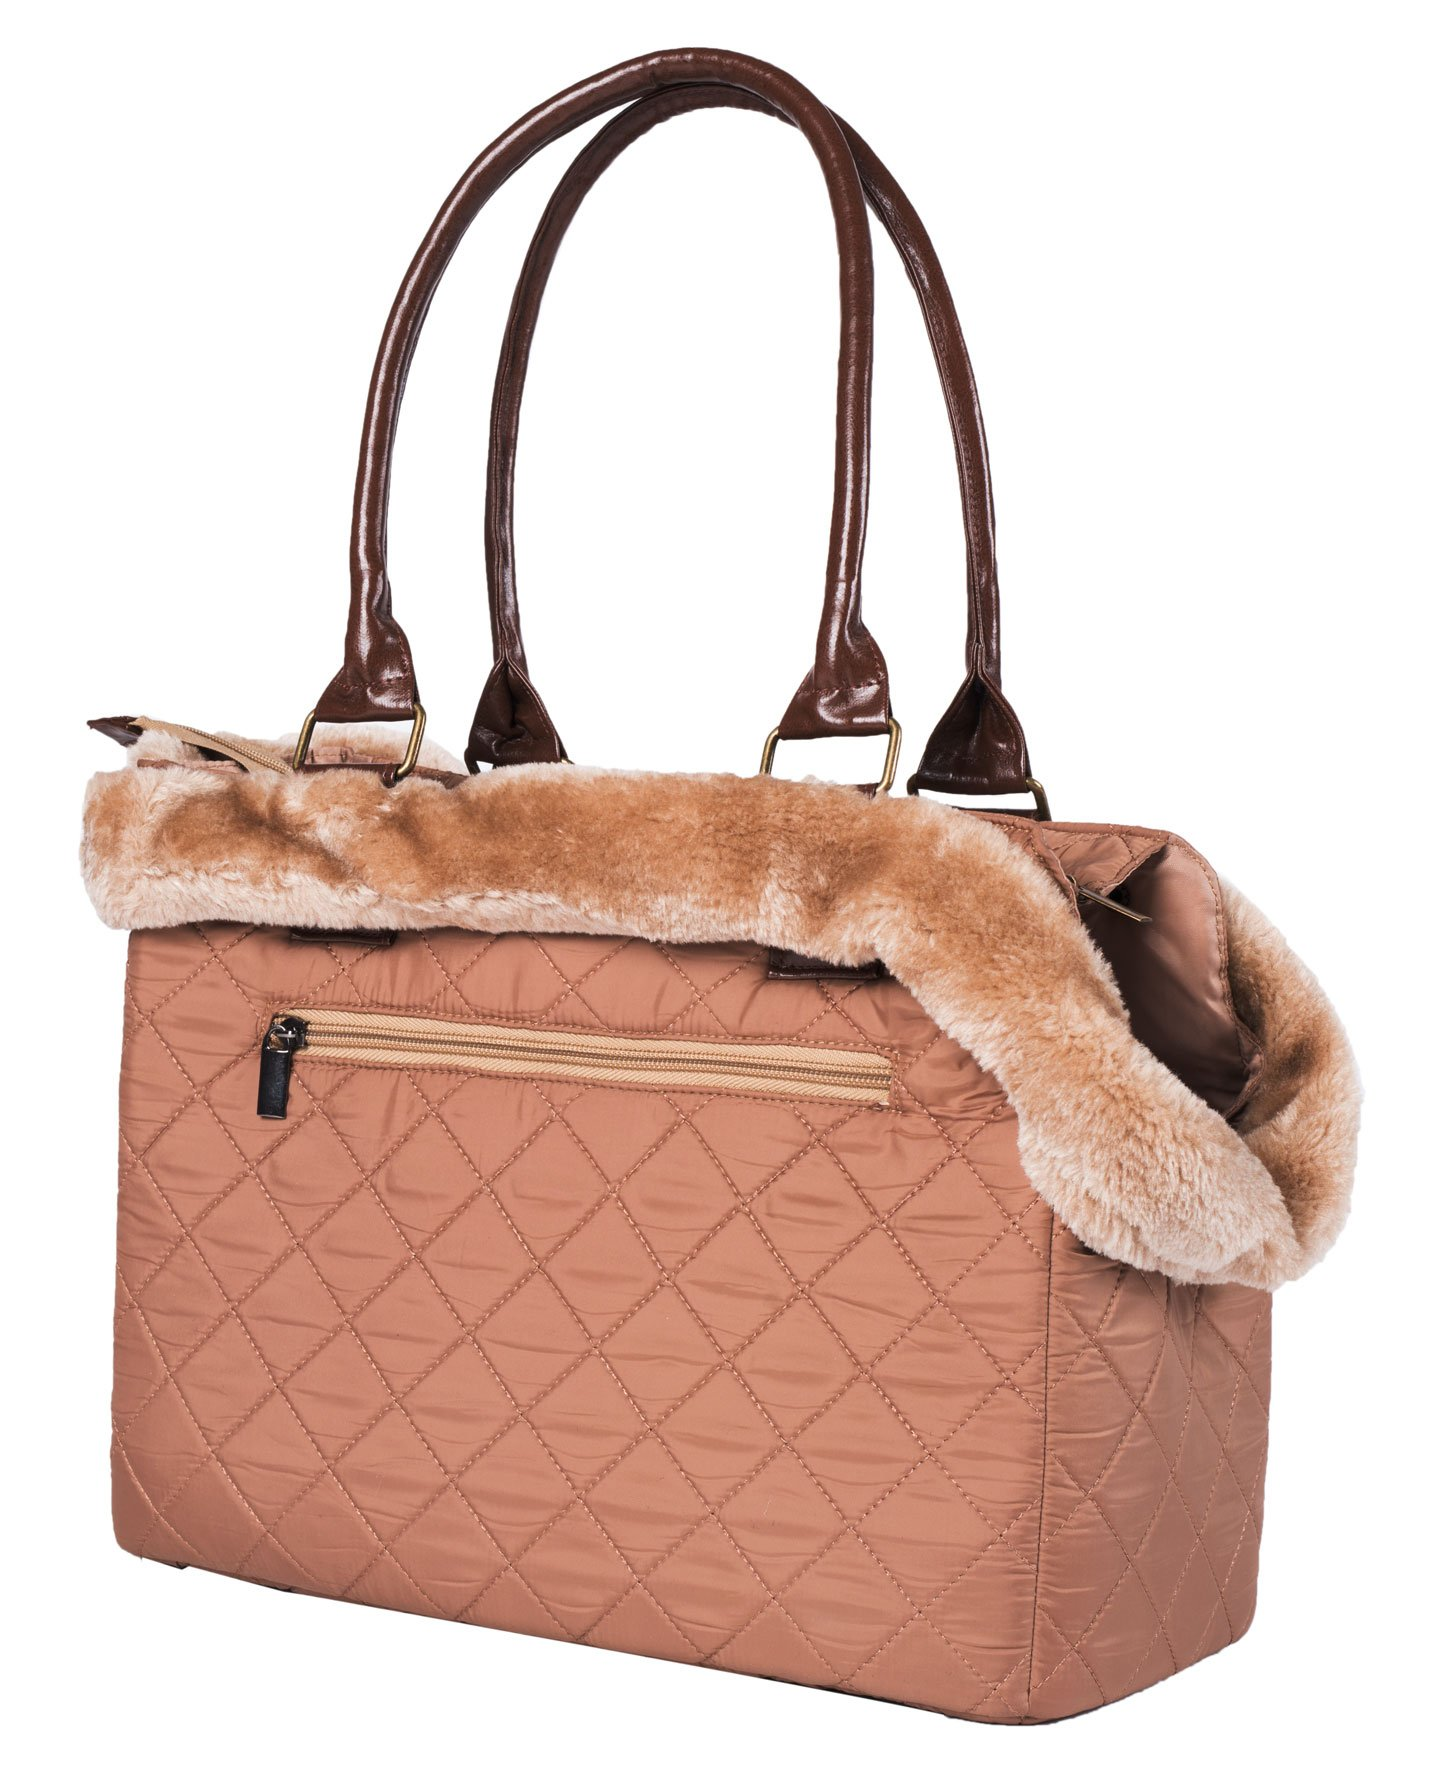 Wouapy Chic Transport Bag for Dog, Brown